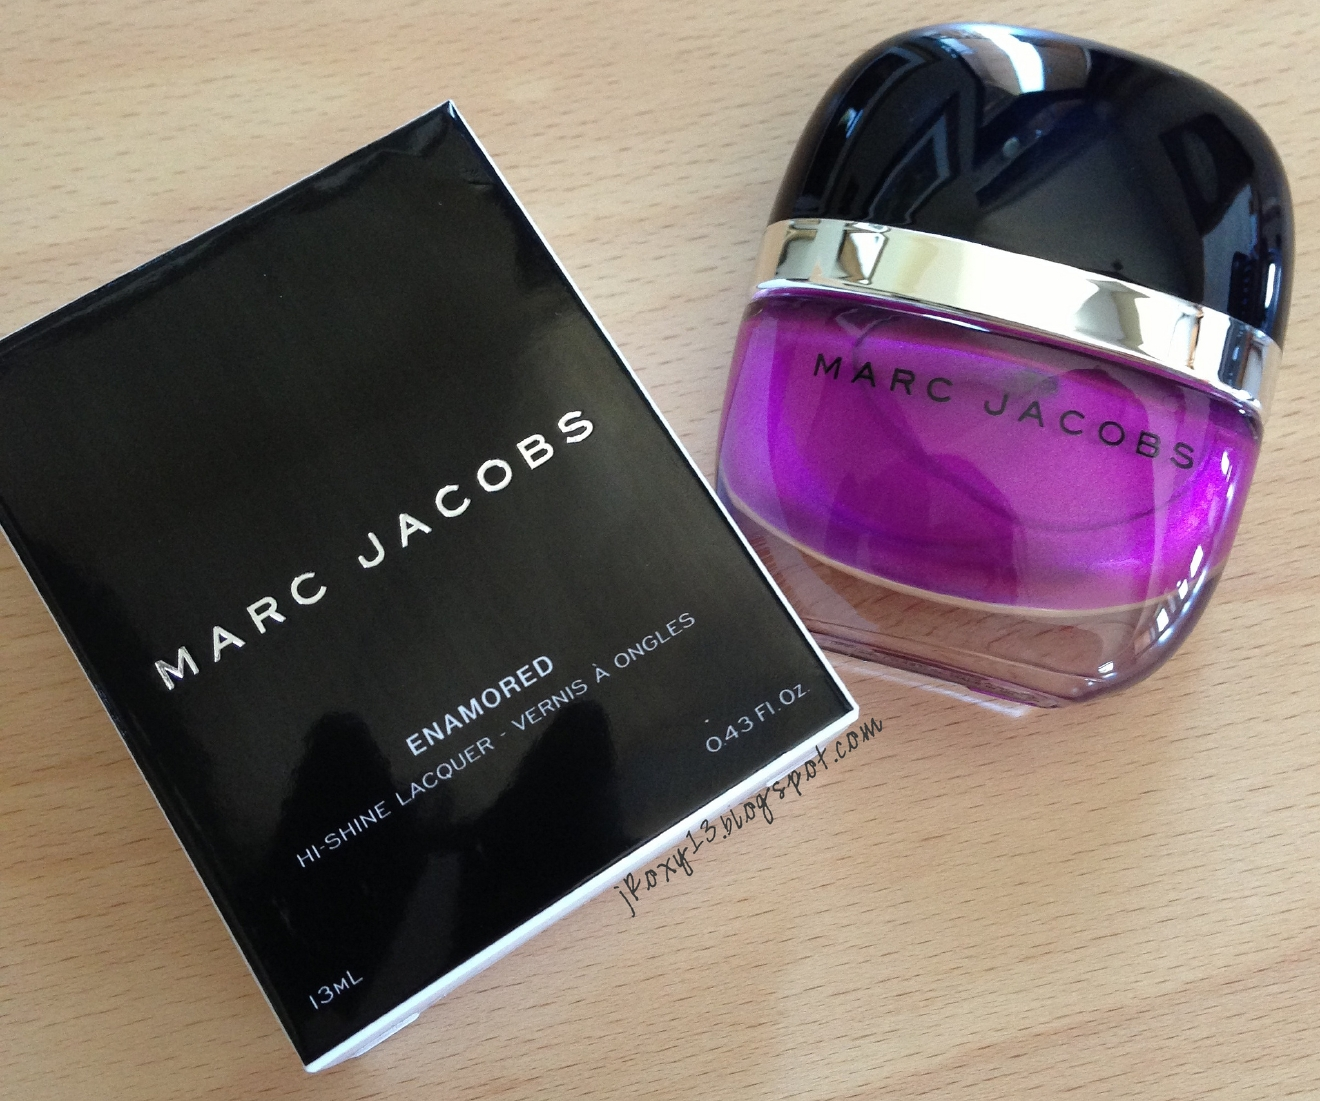 Pick a signature color or go all out and pick up a couple bottles -- Marc Jacob's line comes in and will set you back $18 a pop. (Image: https://flic.kr/p/fgxfgG)